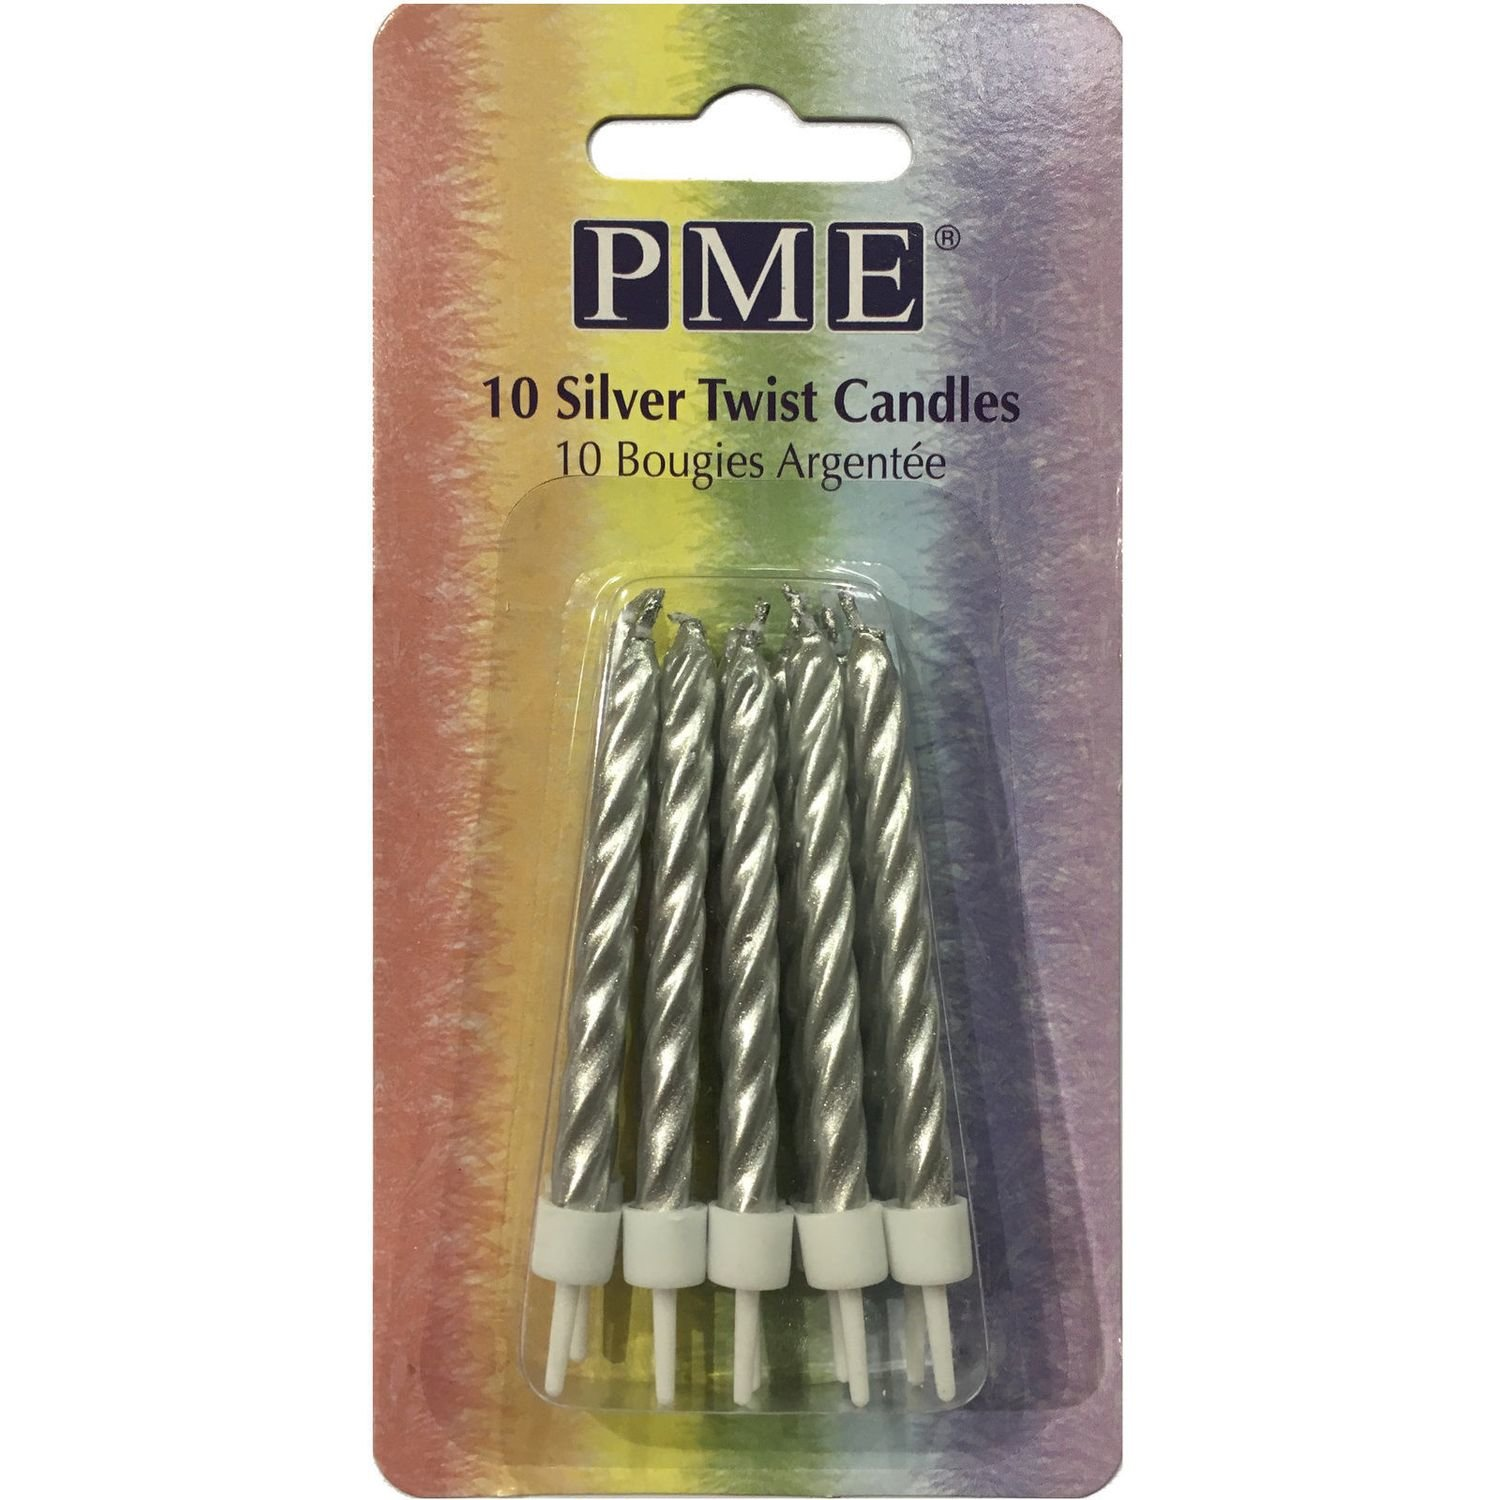 PME 10 Silver Twist Candles